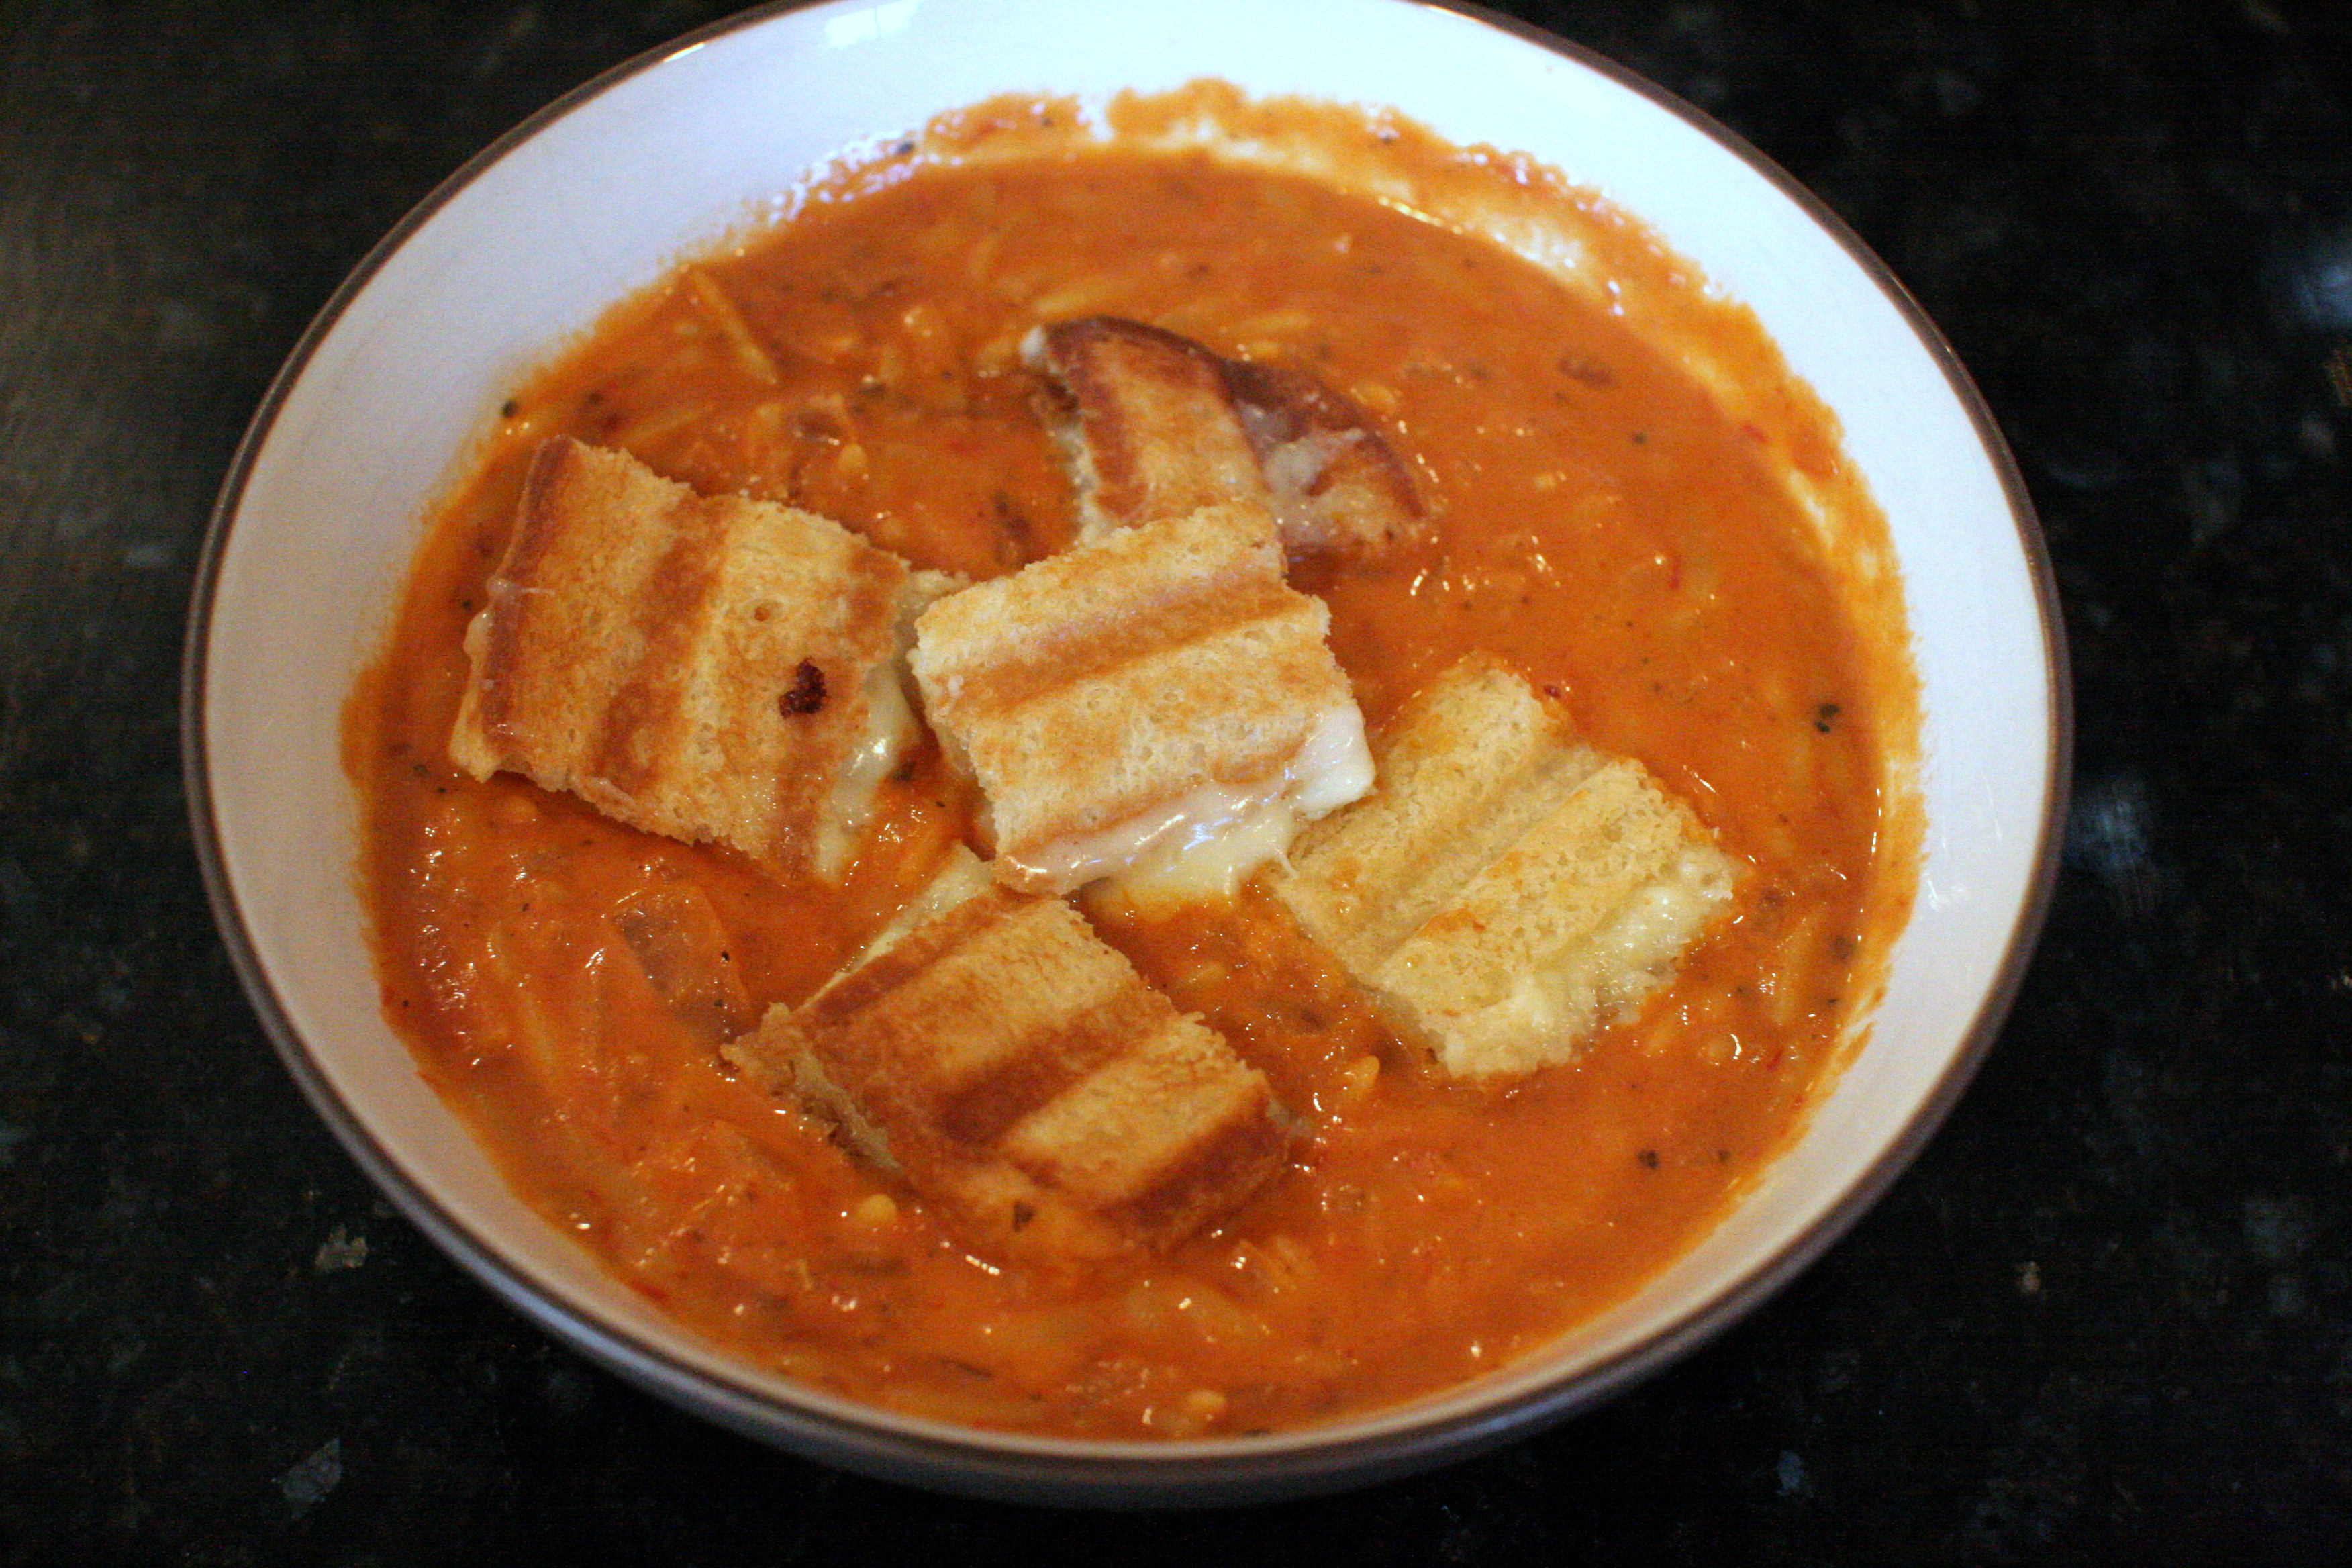 Ina Garten Soup Soup Week Day 5 Ina Garten's Easy Tomato Soup With Grilled Cheese